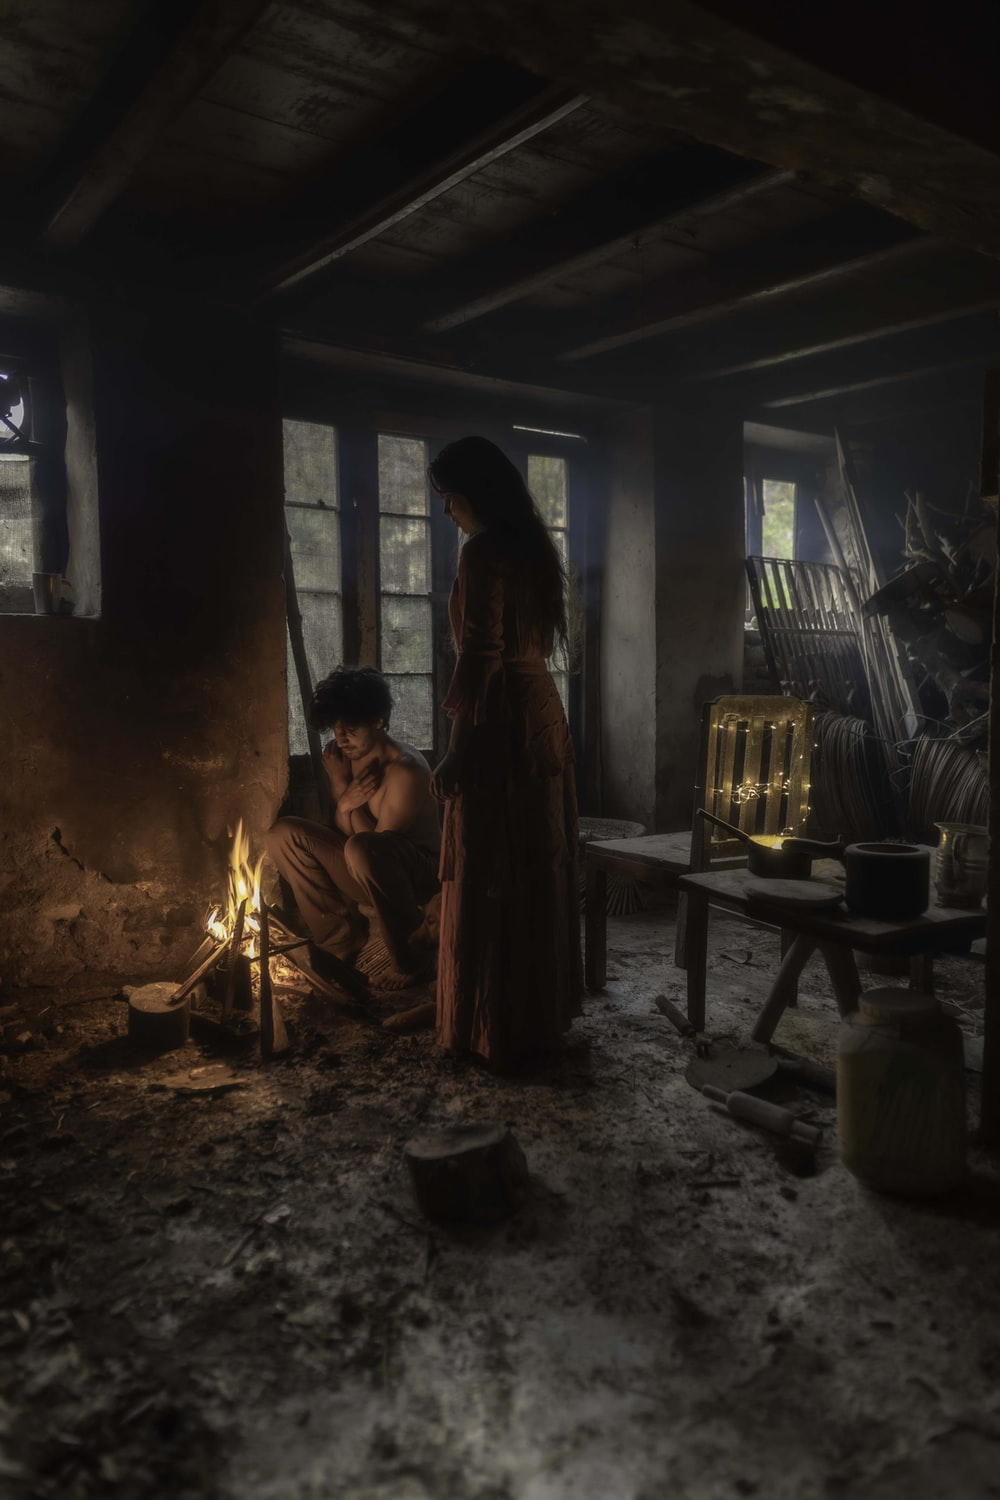 man and woman in front of bonfire inside room